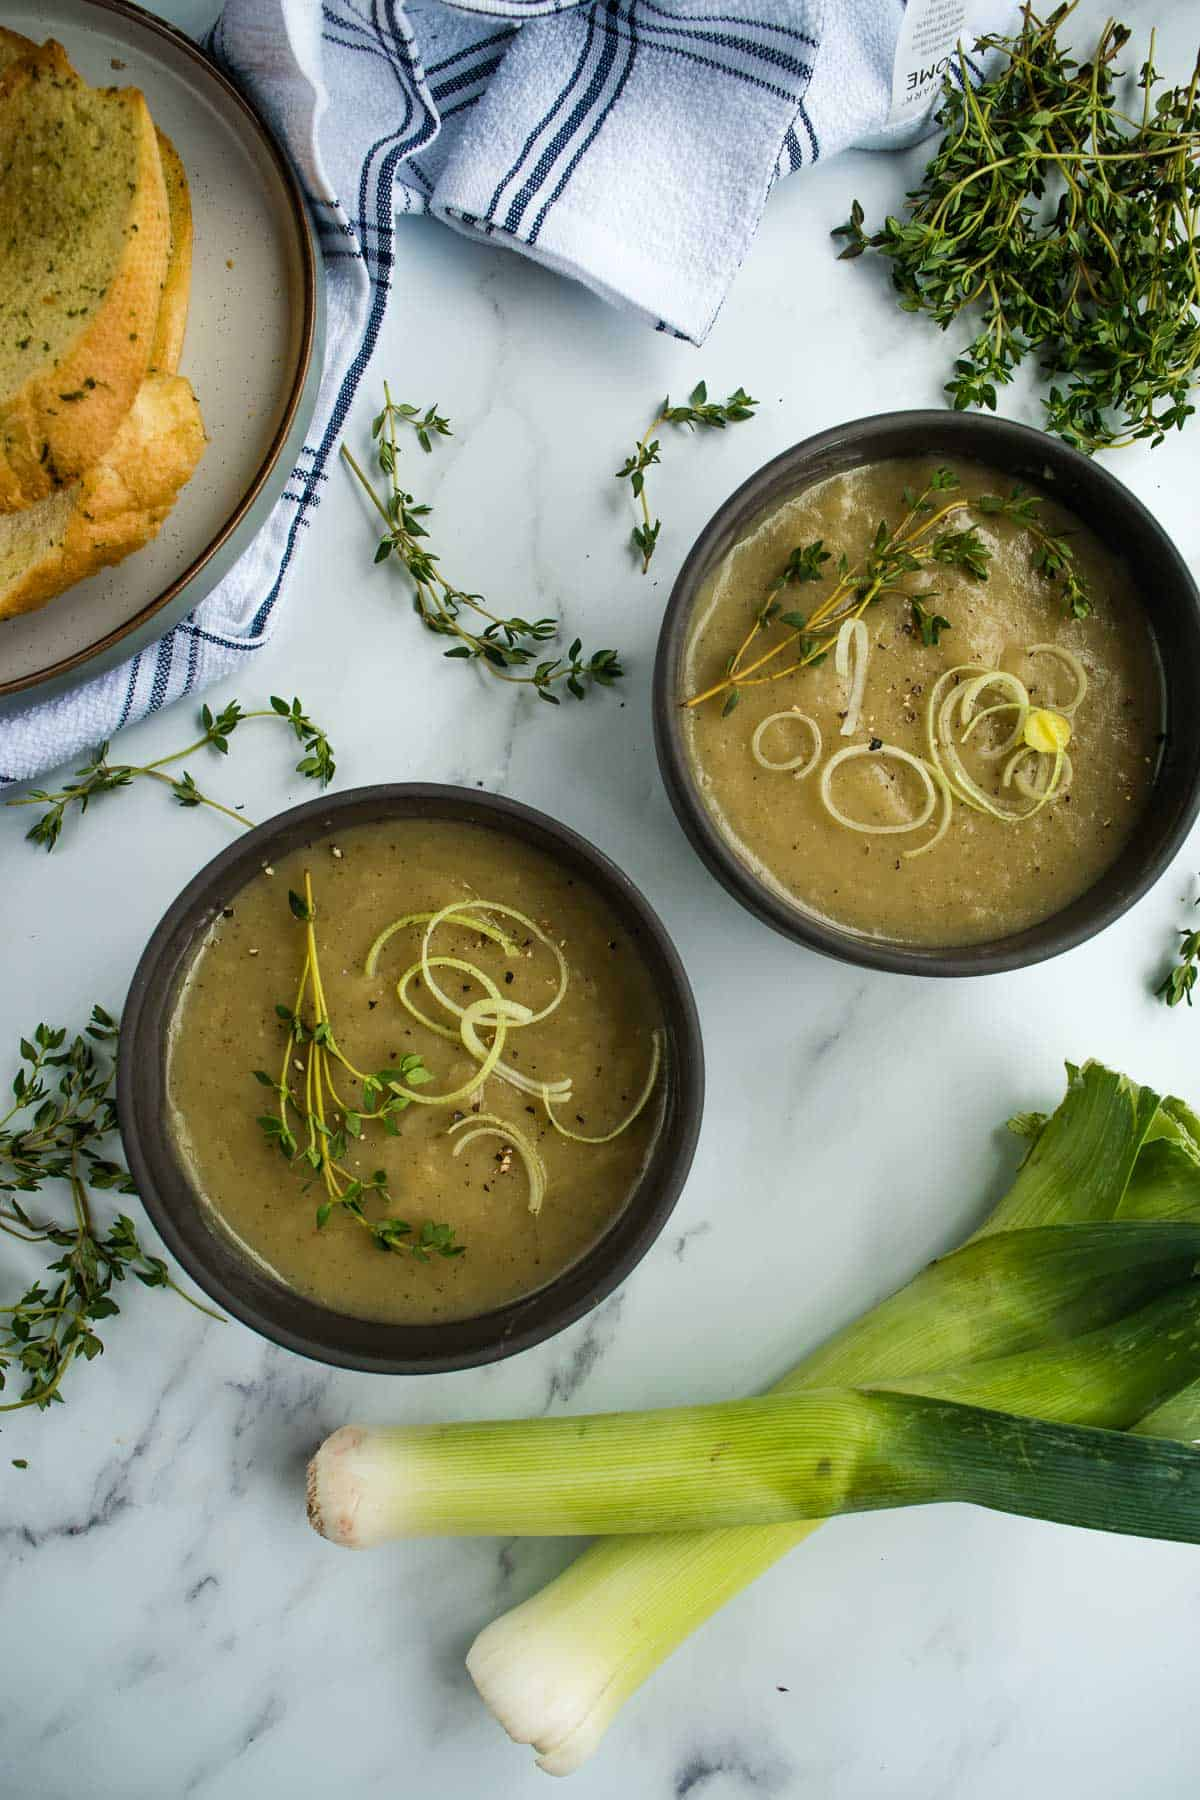 Leek and potato soup in bowls.